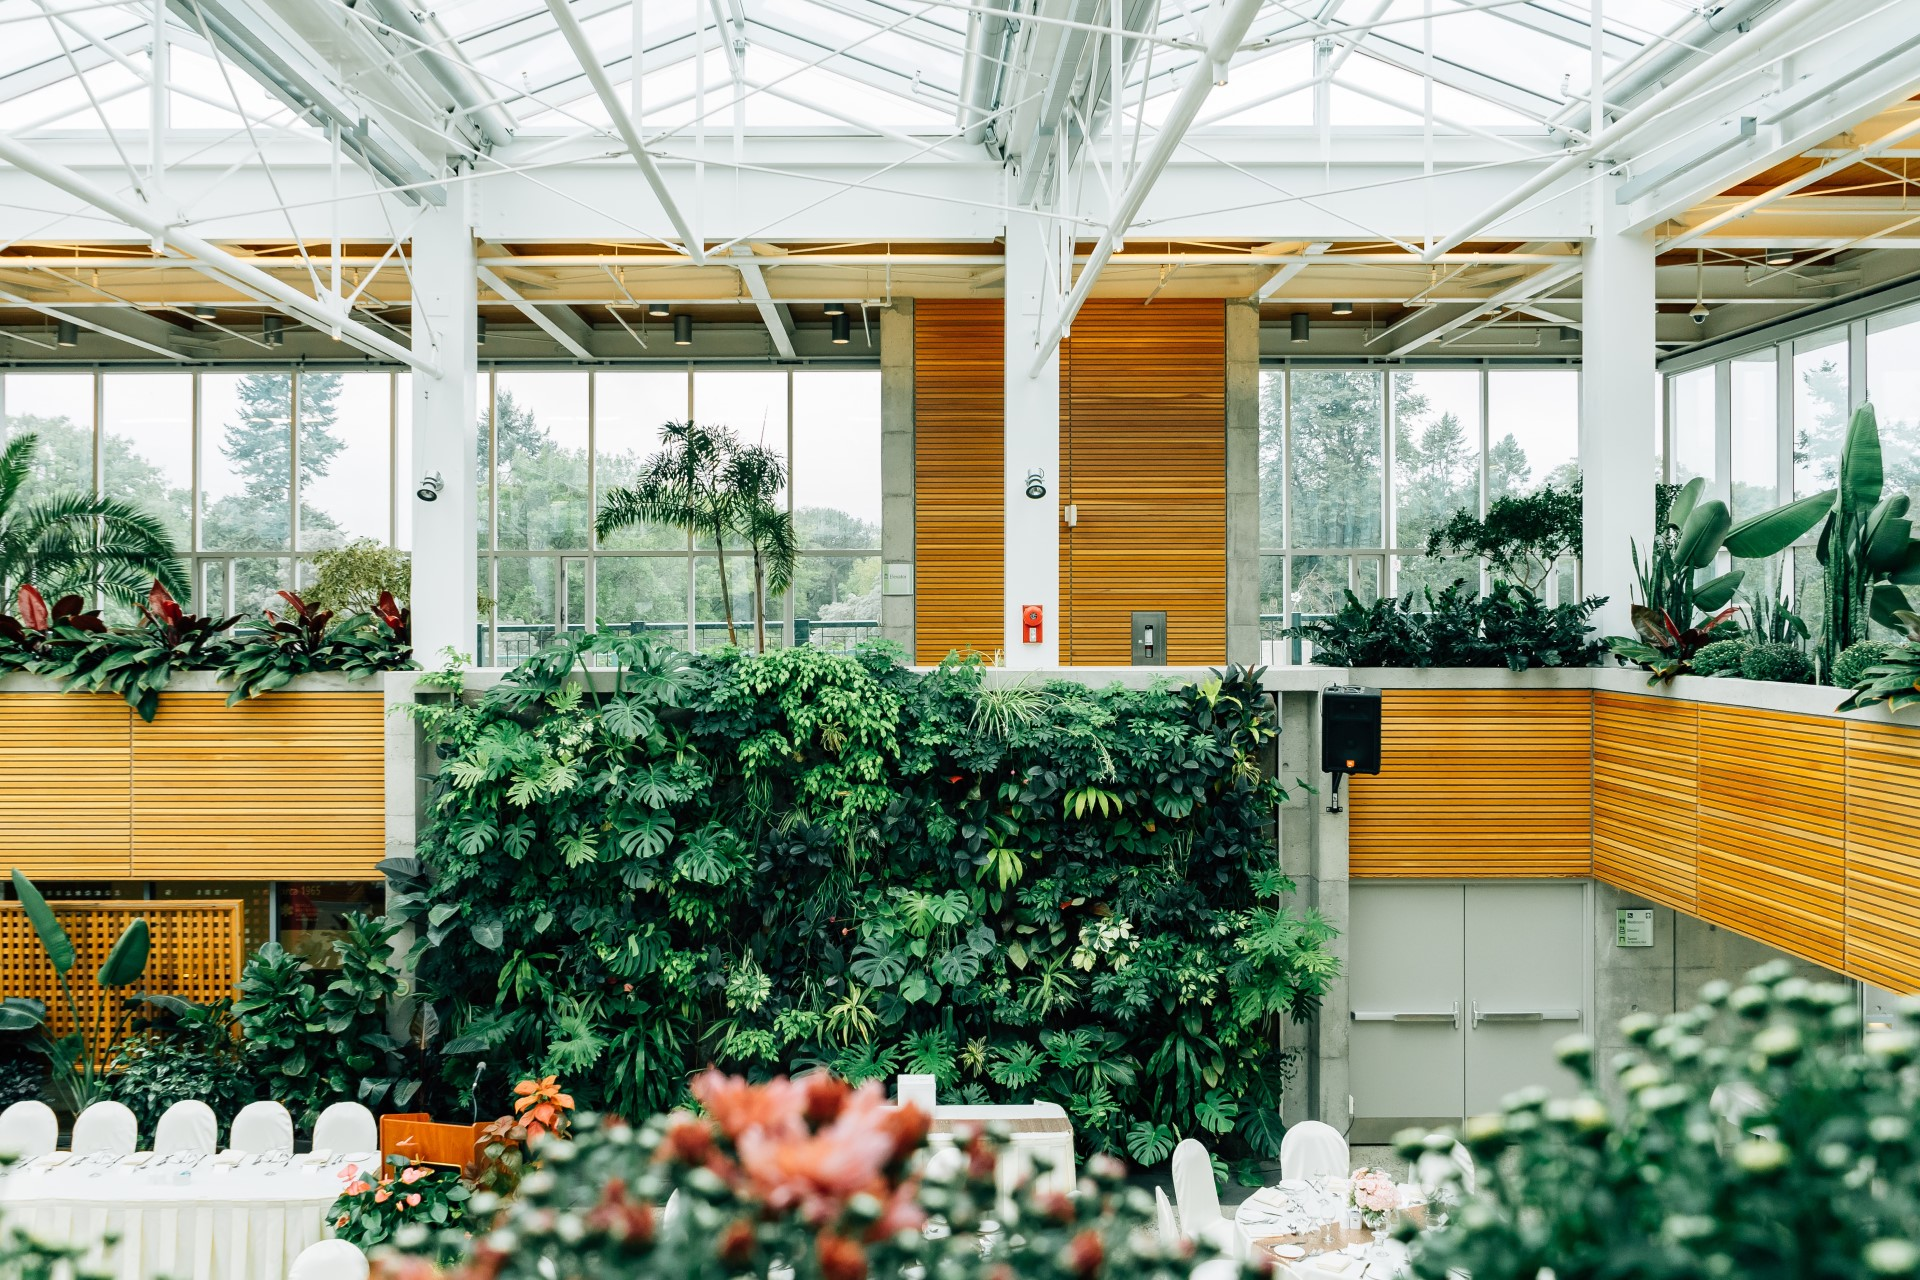 How to Improve Property Values with Green infrastructure   One of the best ways to improve property values, and the economy as a whole, is to implement green systems.